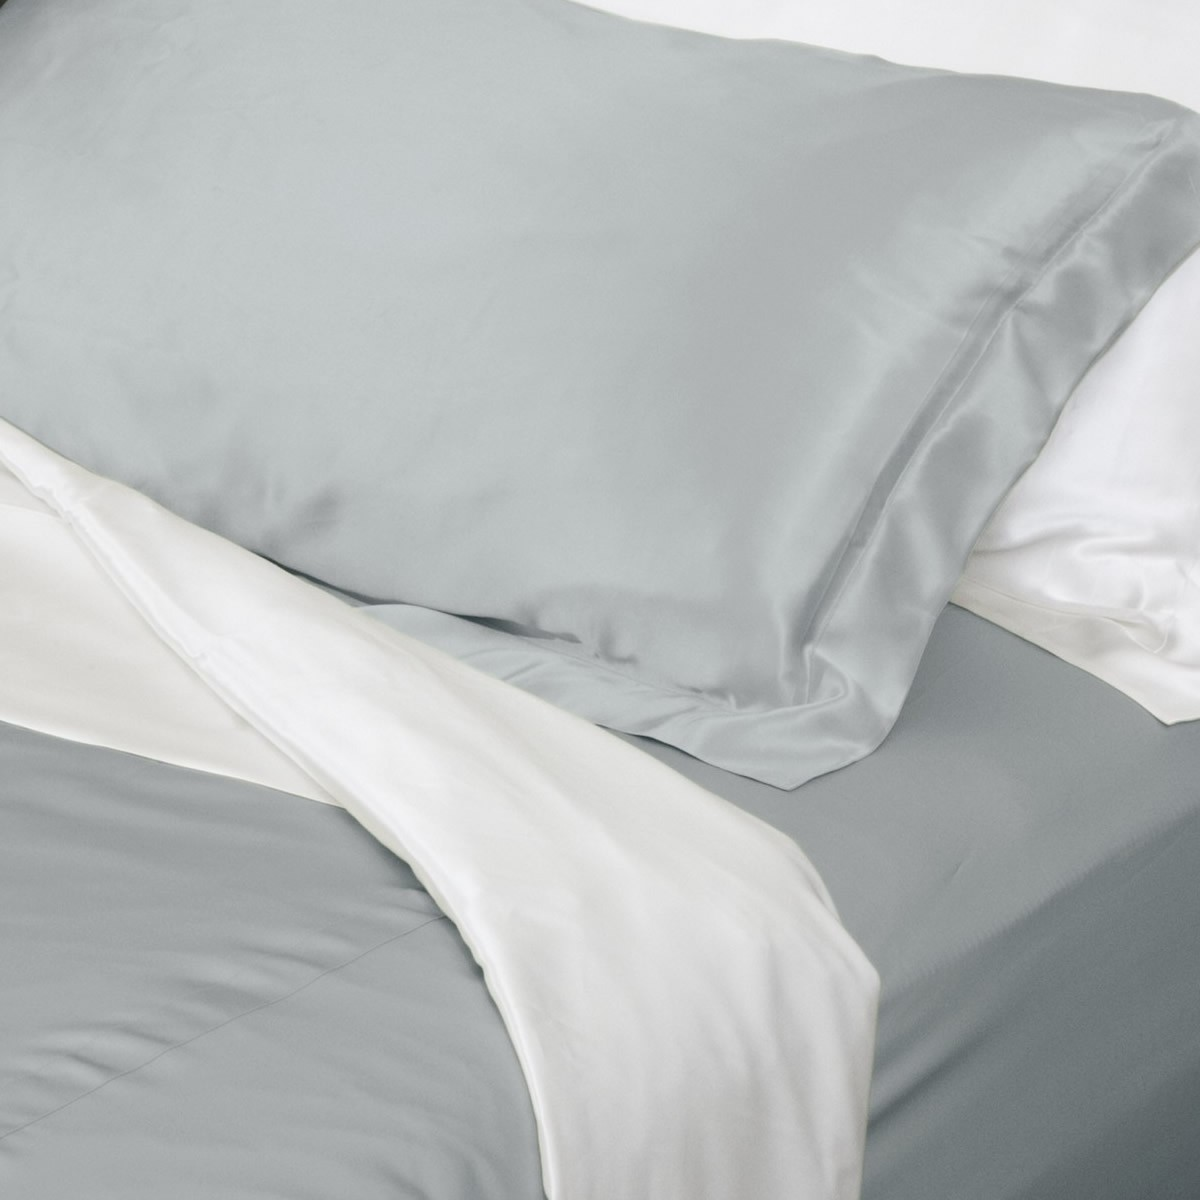 Do Not Dryclean Caring For Silk Bedding